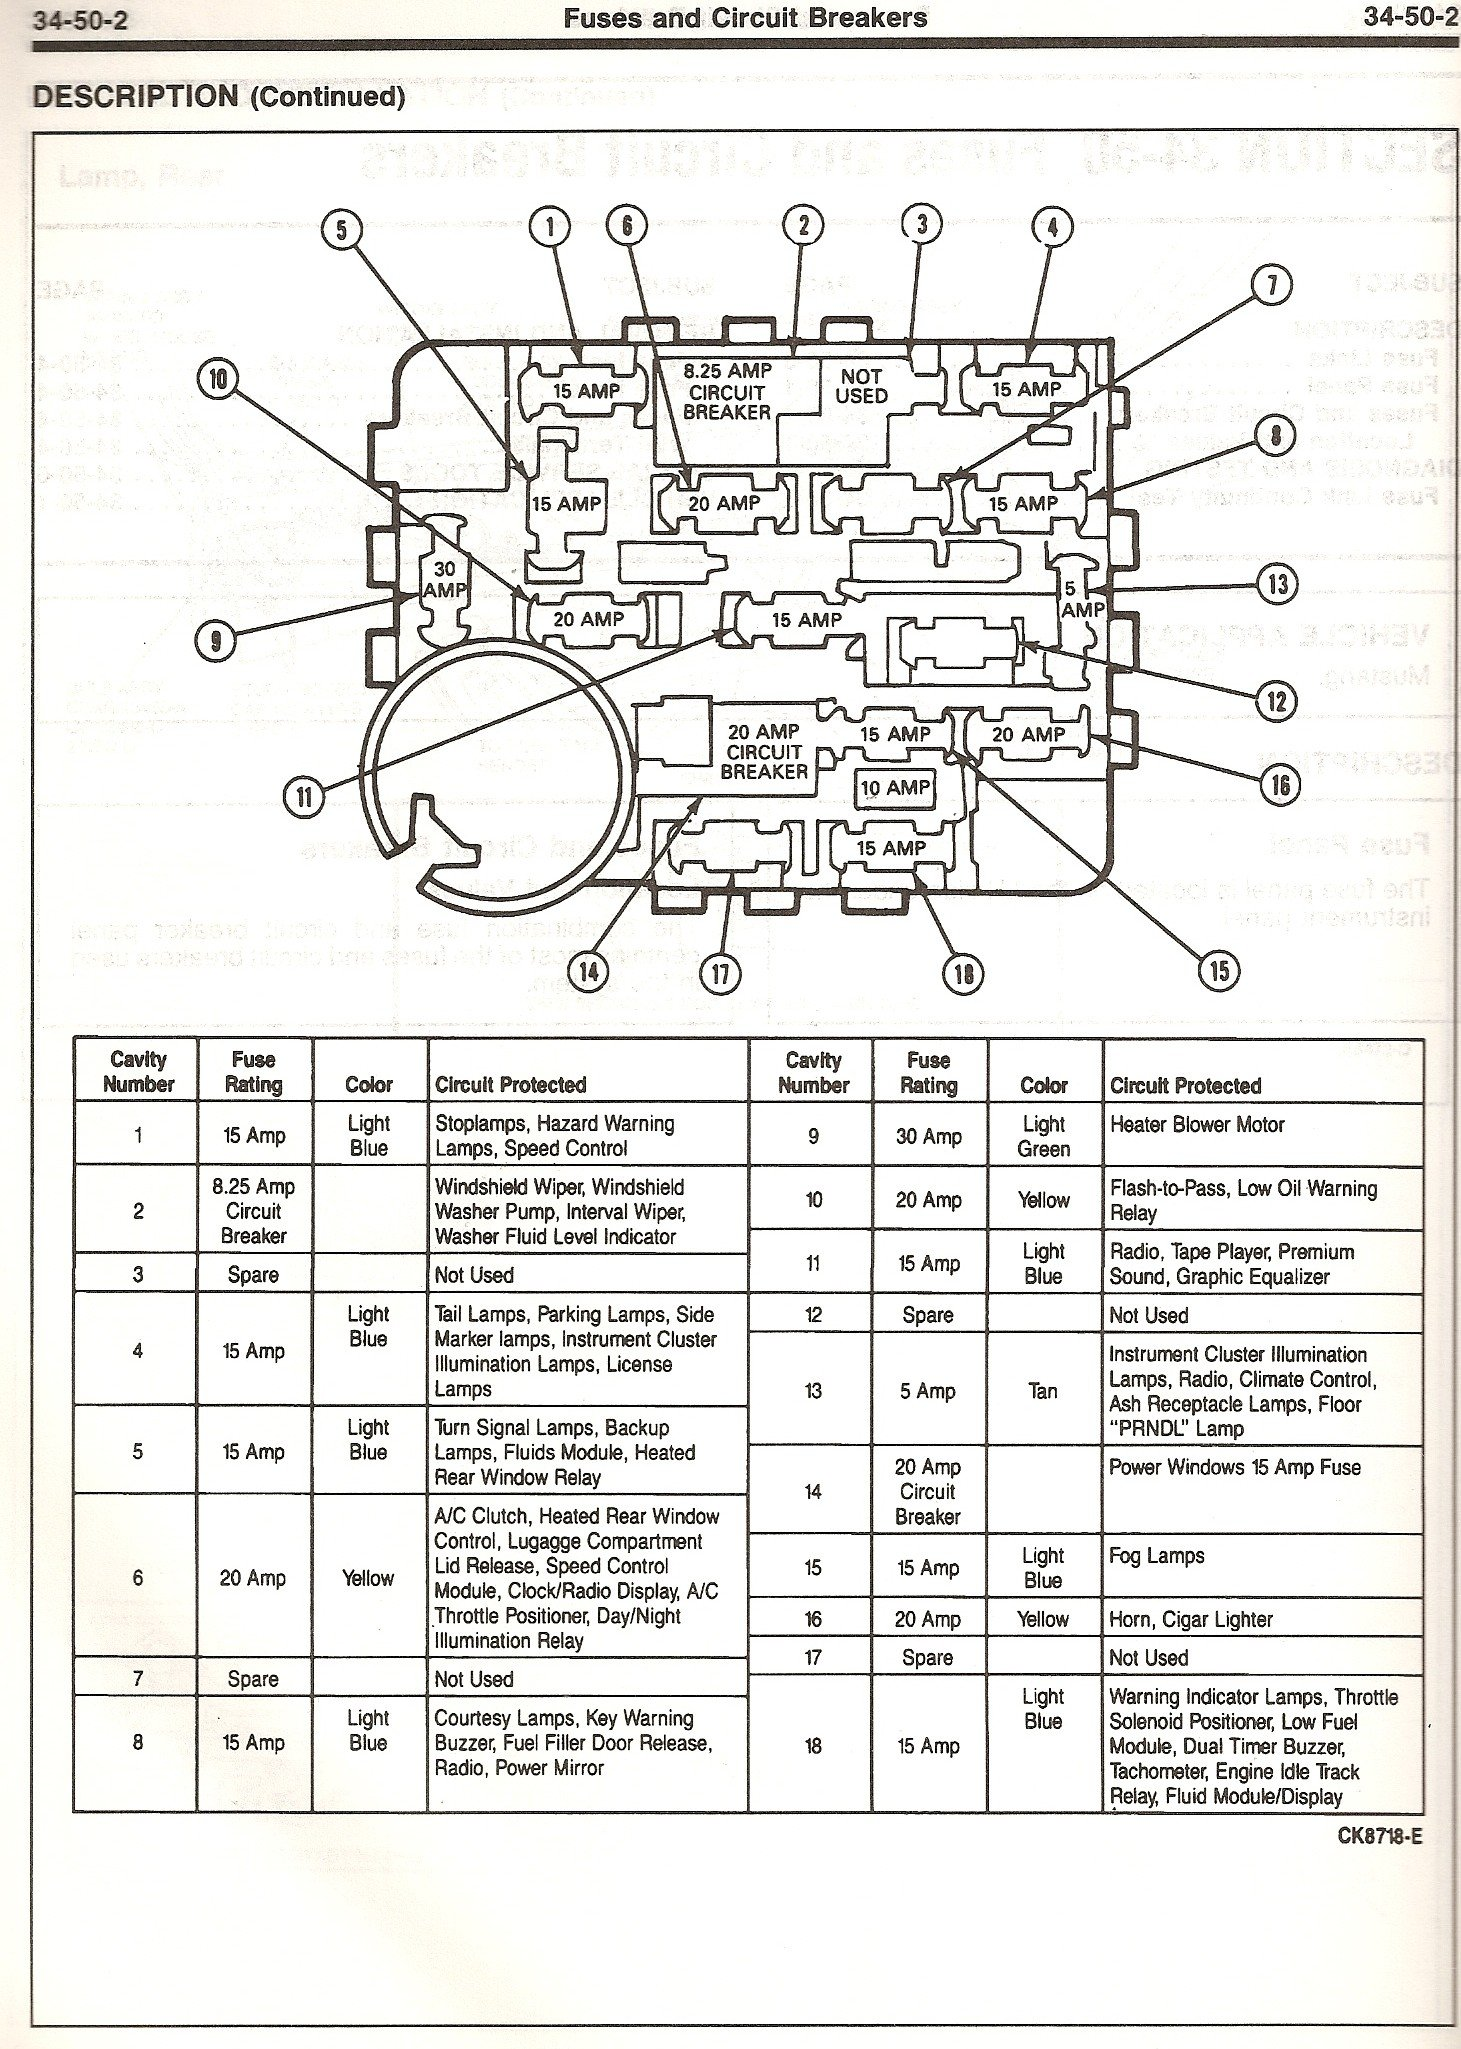 93 Mustang Fuse Panel Diagram Detailed Schematics 1967 Cougar Wiring 1992 Ford Box Schematic Diagrams